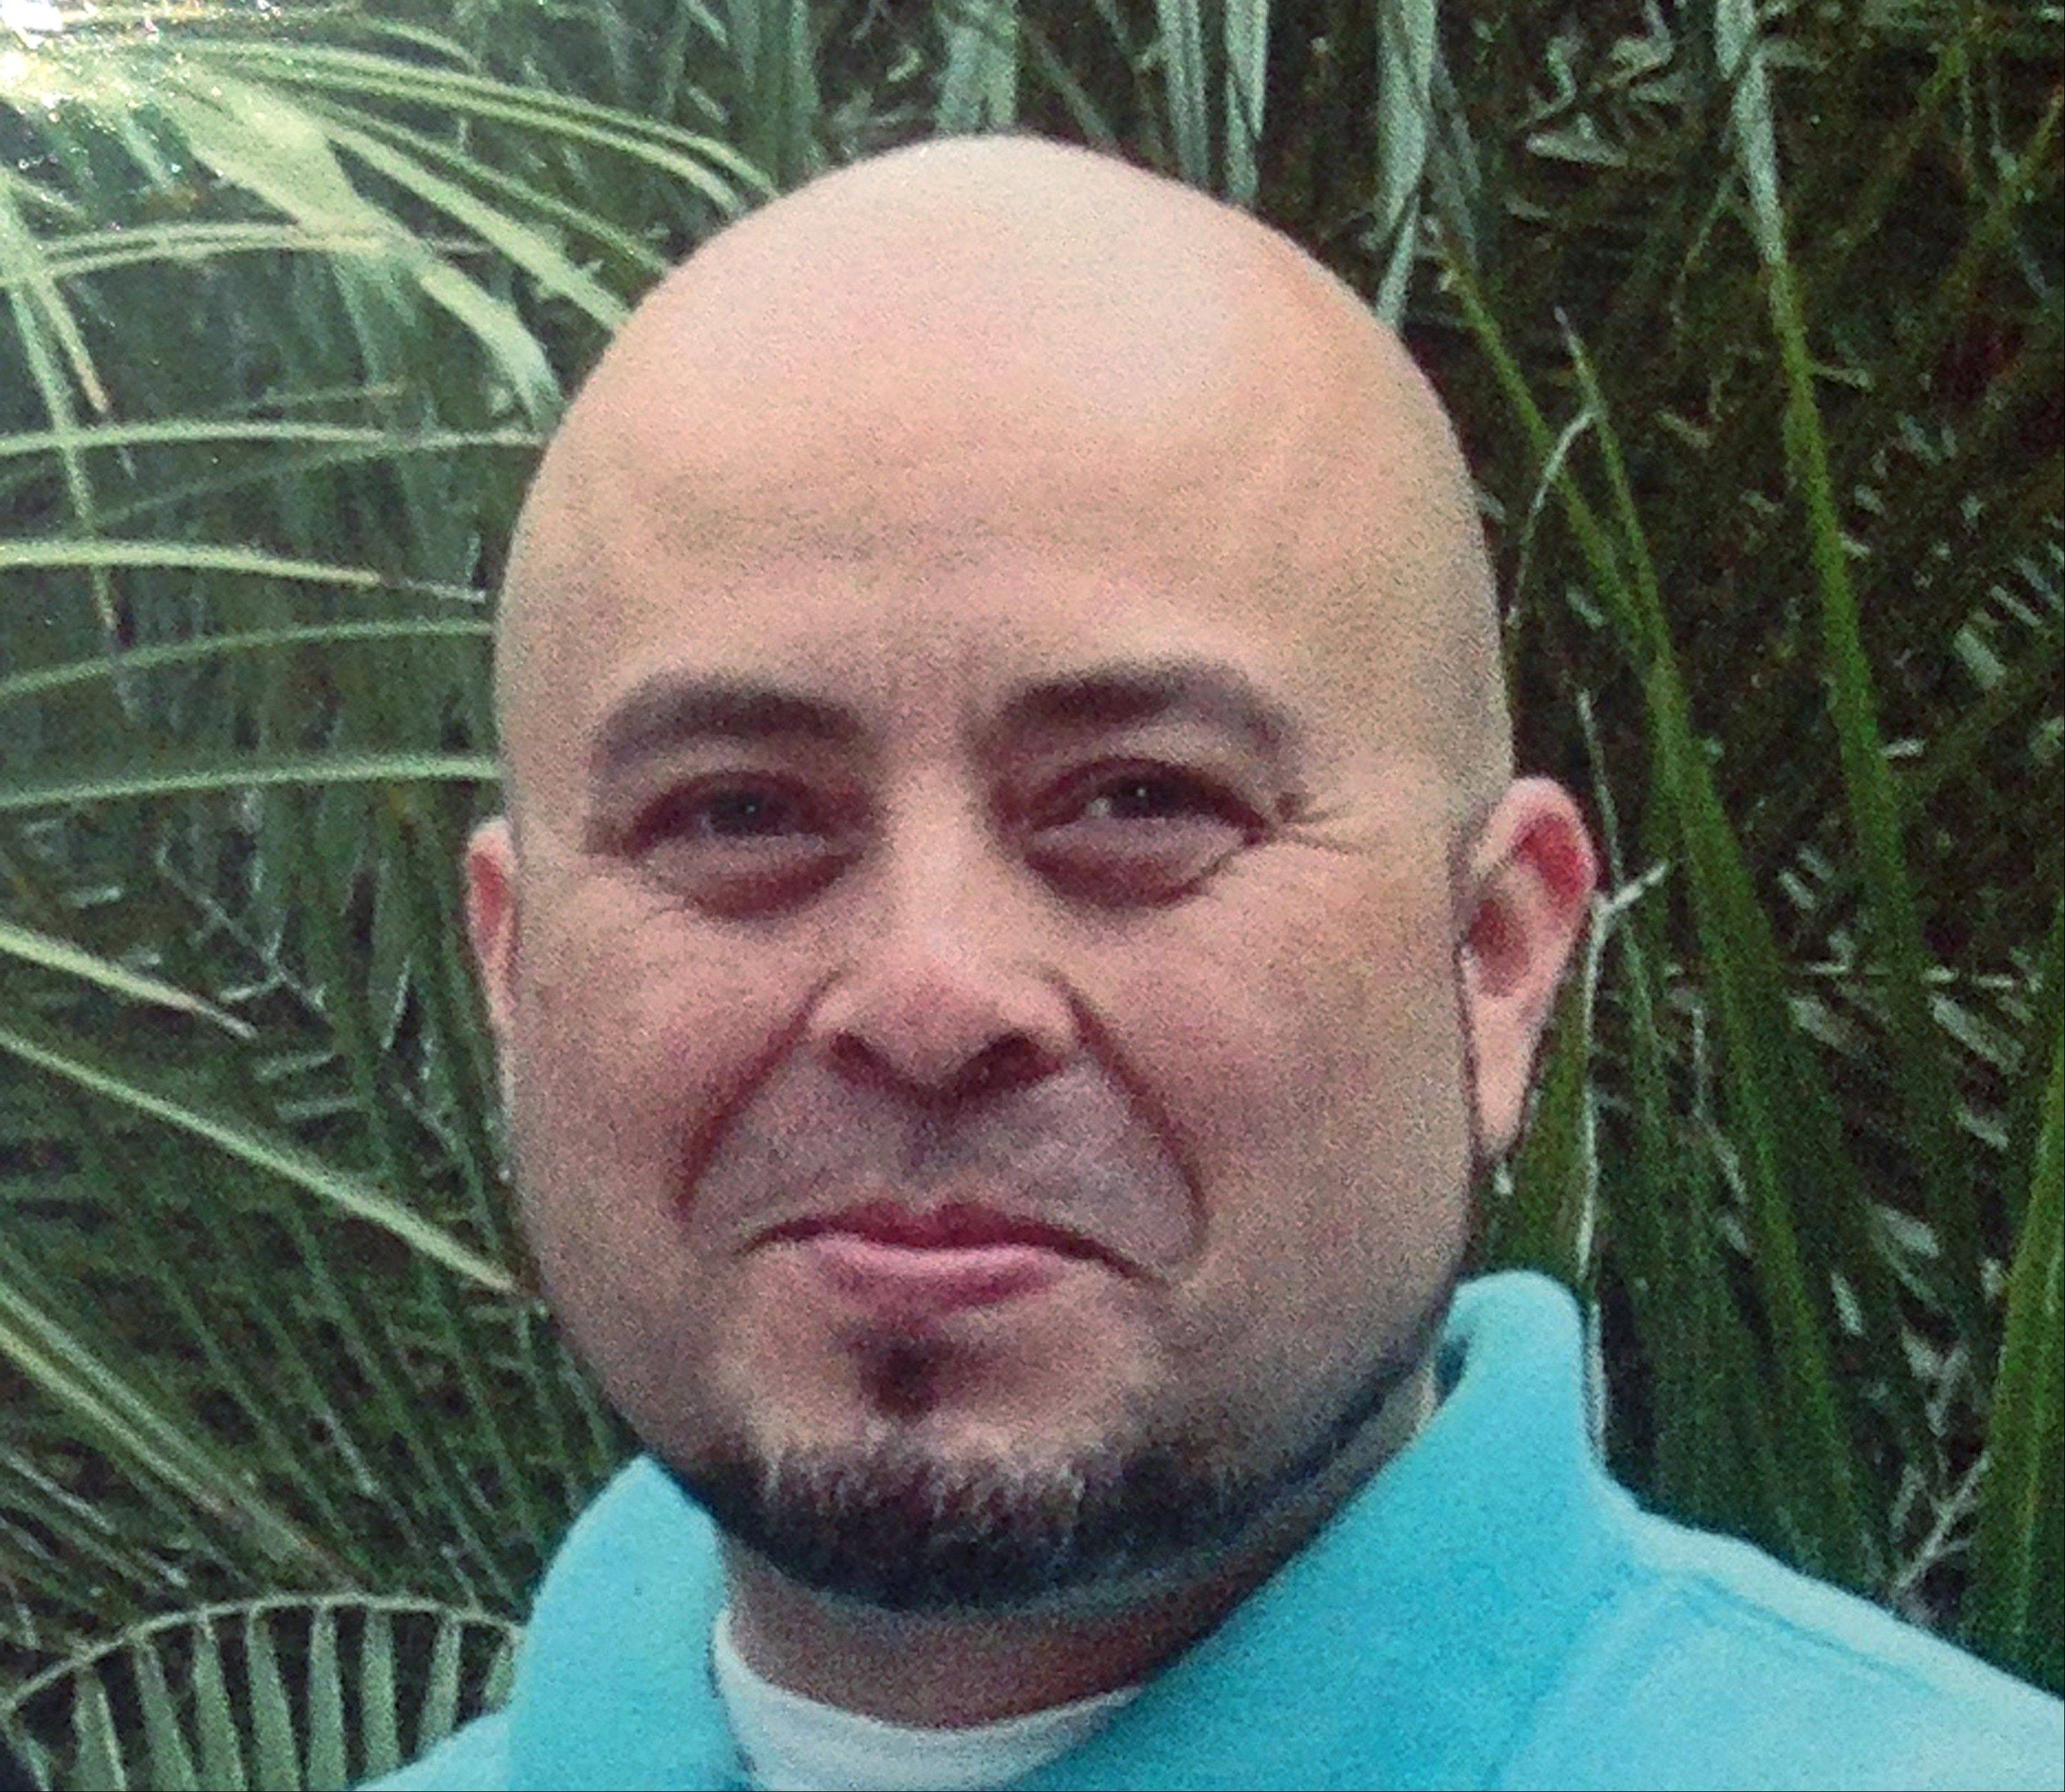 Transportation Security Administration officer Gerardo Hernandez, 39, who was shot to death by a gunman on a shooting rampage Friday in Terminal 3 at Los Angeles International Airport.